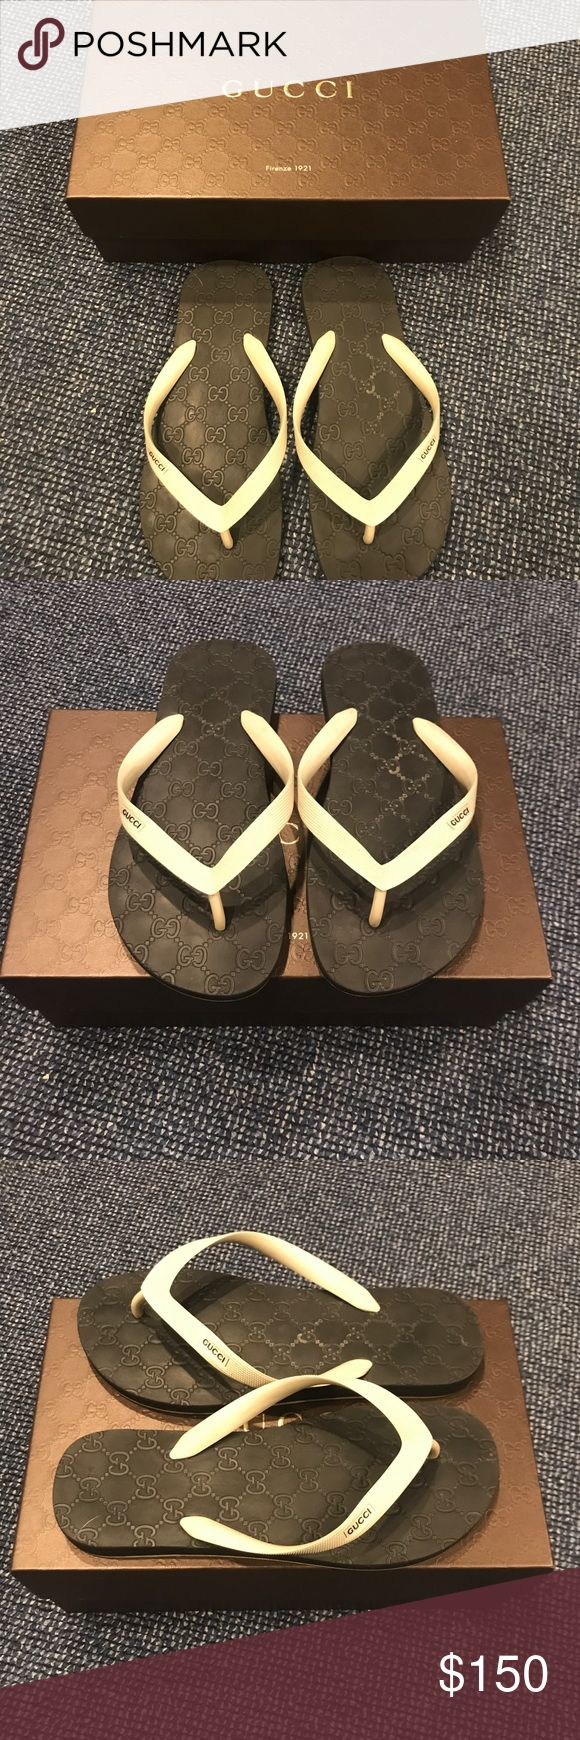 Gucci Men's GG Rubber Flip Flops With Box - Sz 9.5 Gucci Men's Rubber Flip Flops With Box -  Men's Black & White Rubber Thong Style Flip Flops with classic GG print.  Size 9.5 Gucci Shoes Sandals & Flip-Flops